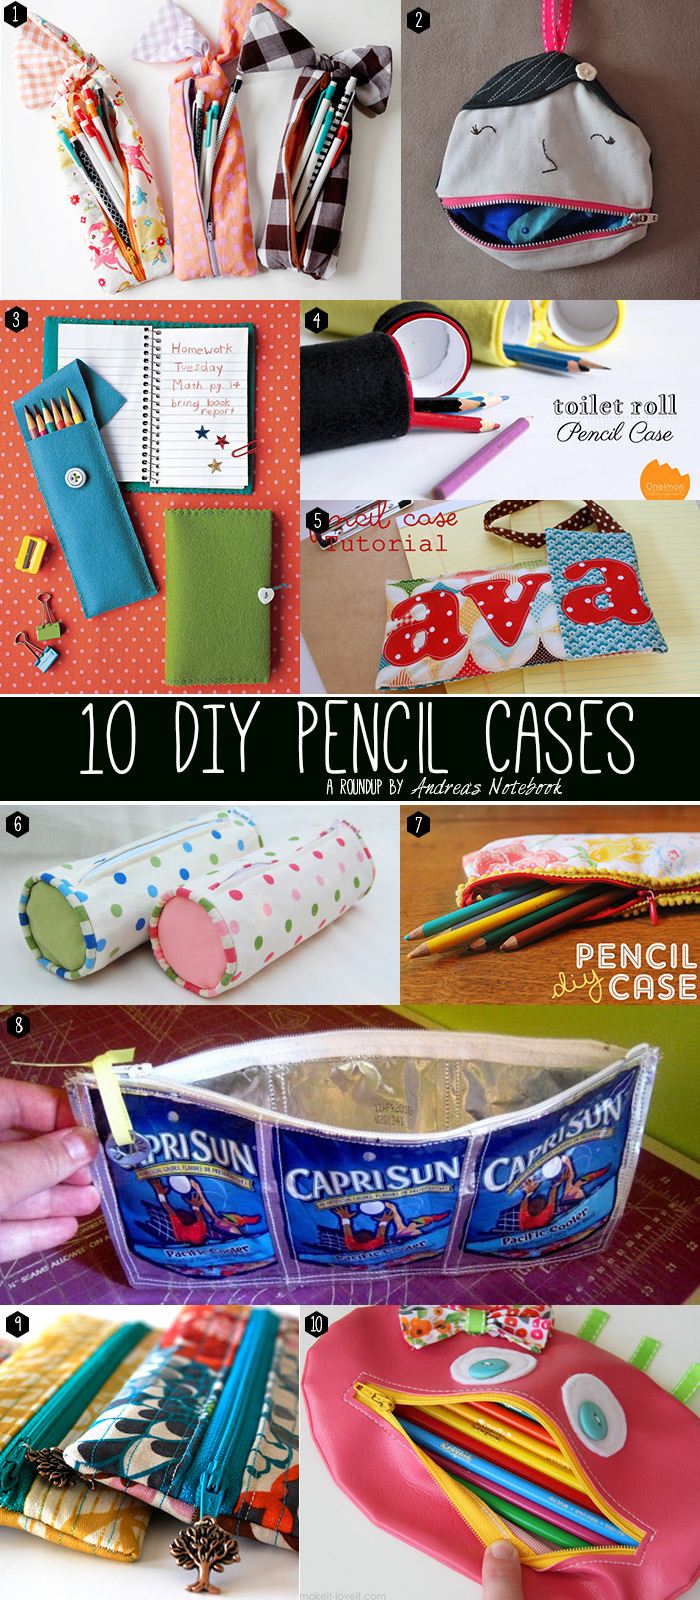 20 DIY pencil cases you can make!